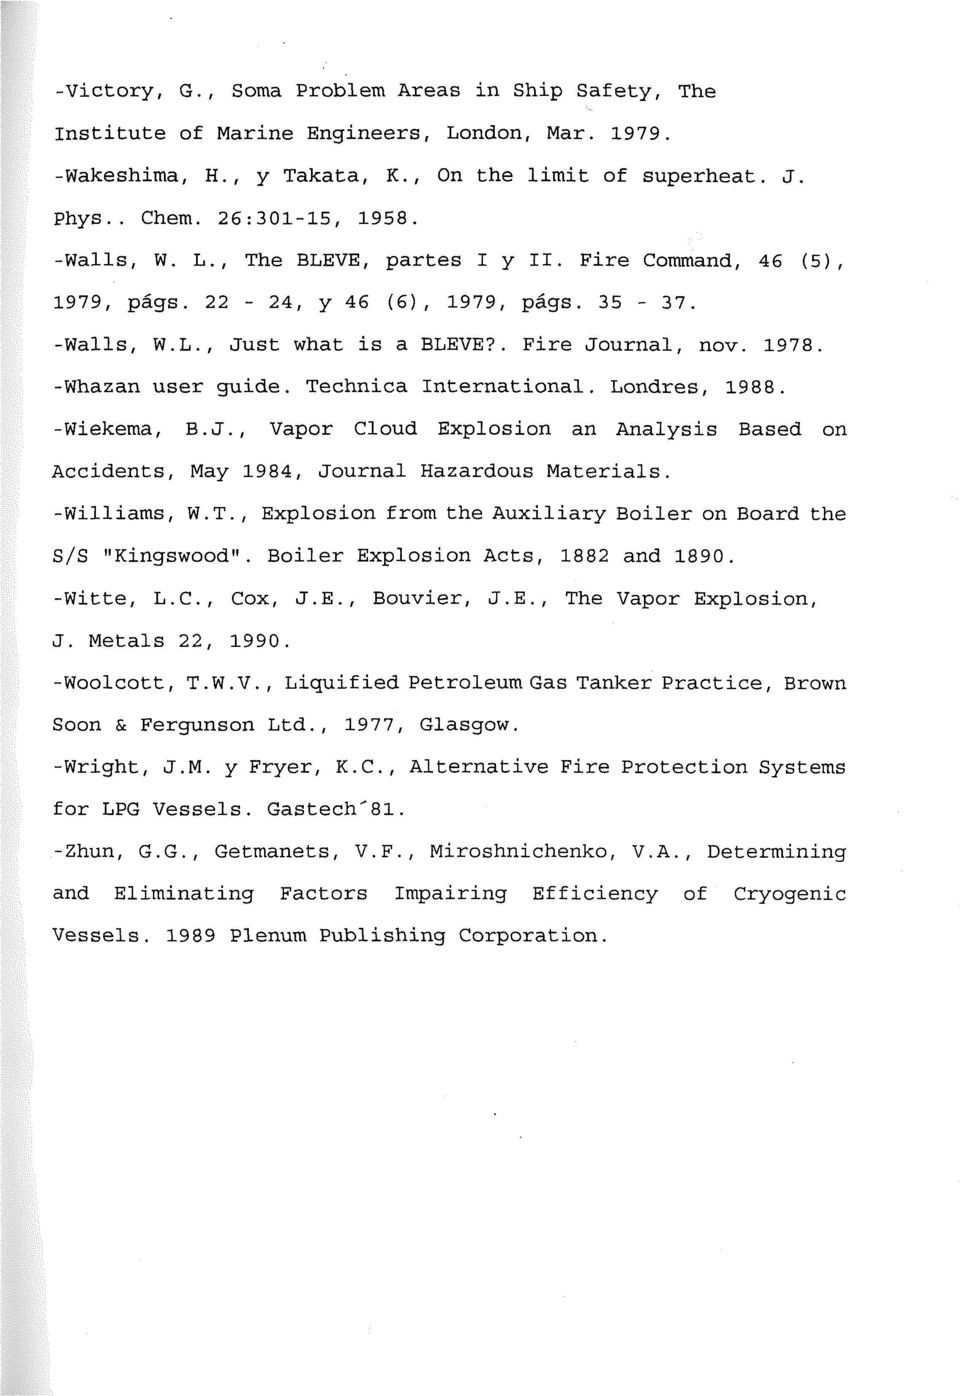 "Technica International. Londres, 1988. -Wiekema, B.J., Vapor Cloud Explosion an Analysis Based on Accidents, May 1984, Journal Hazardous Materials. -Williams, W.T., Explosion from the Auxiliary Boiler on Board the S/S ""Kingswood""."